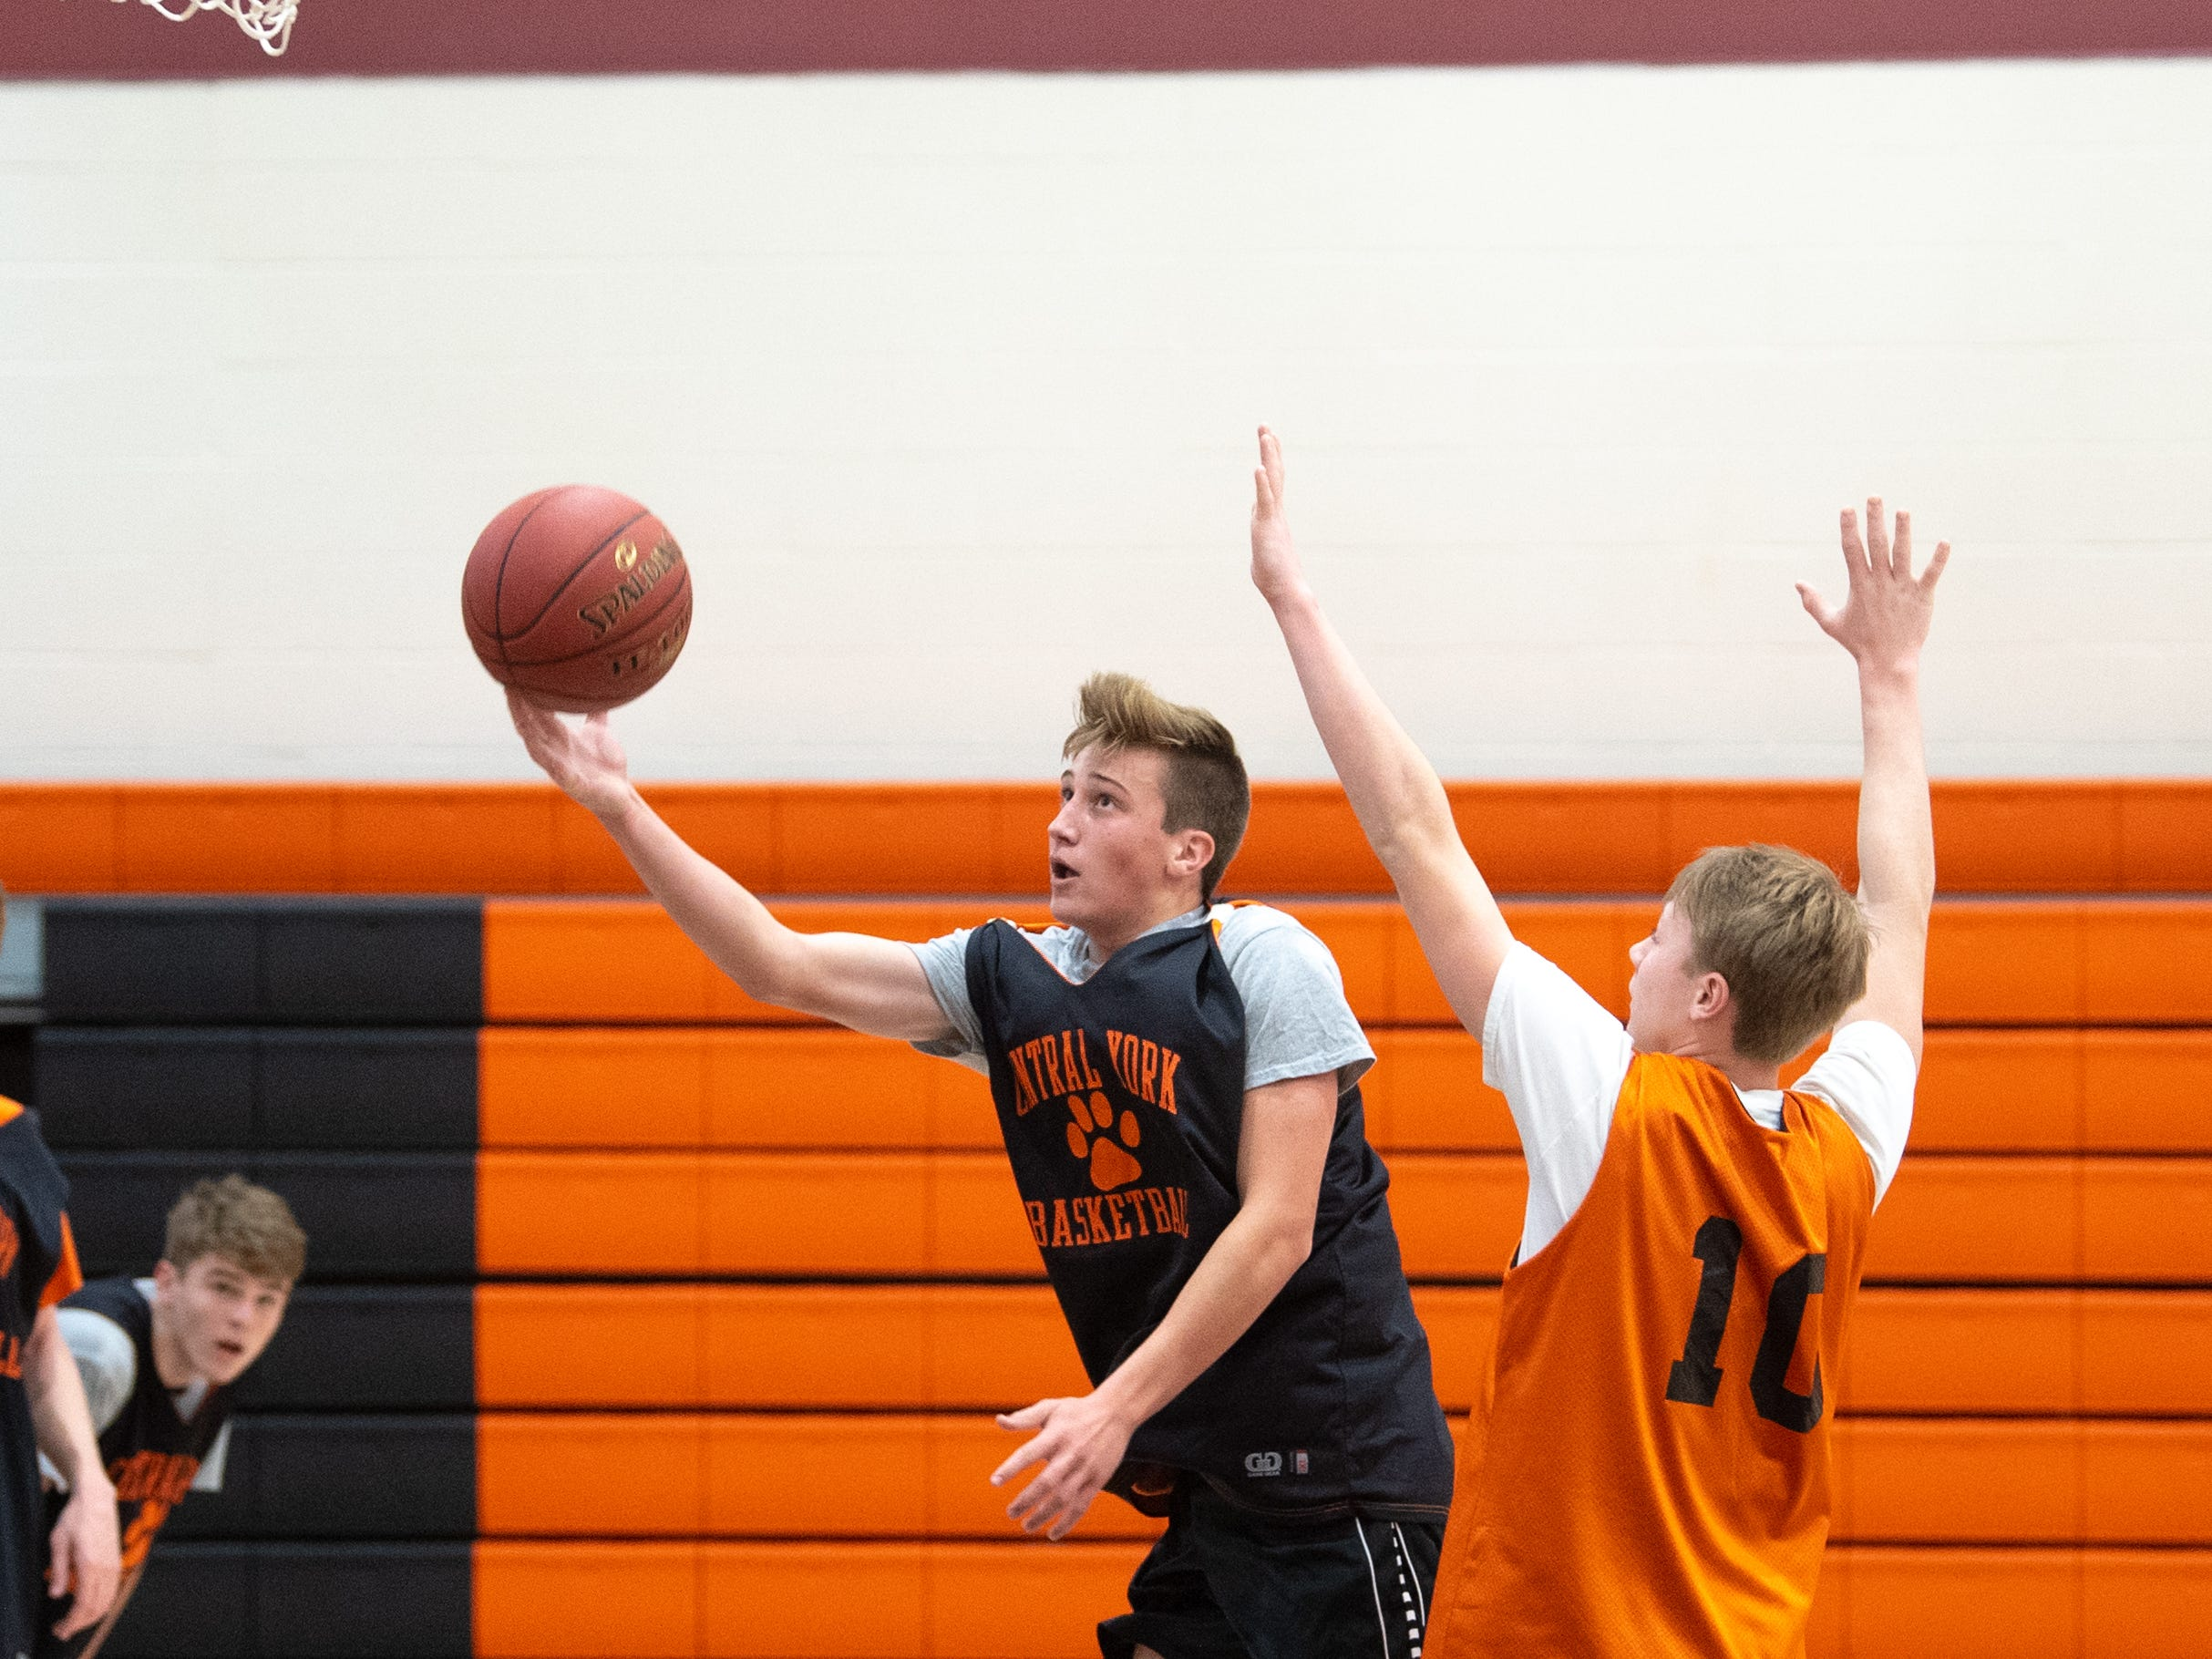 Central York boys' basketball players go head to head during practice, Wednesday, November 21, 2018.